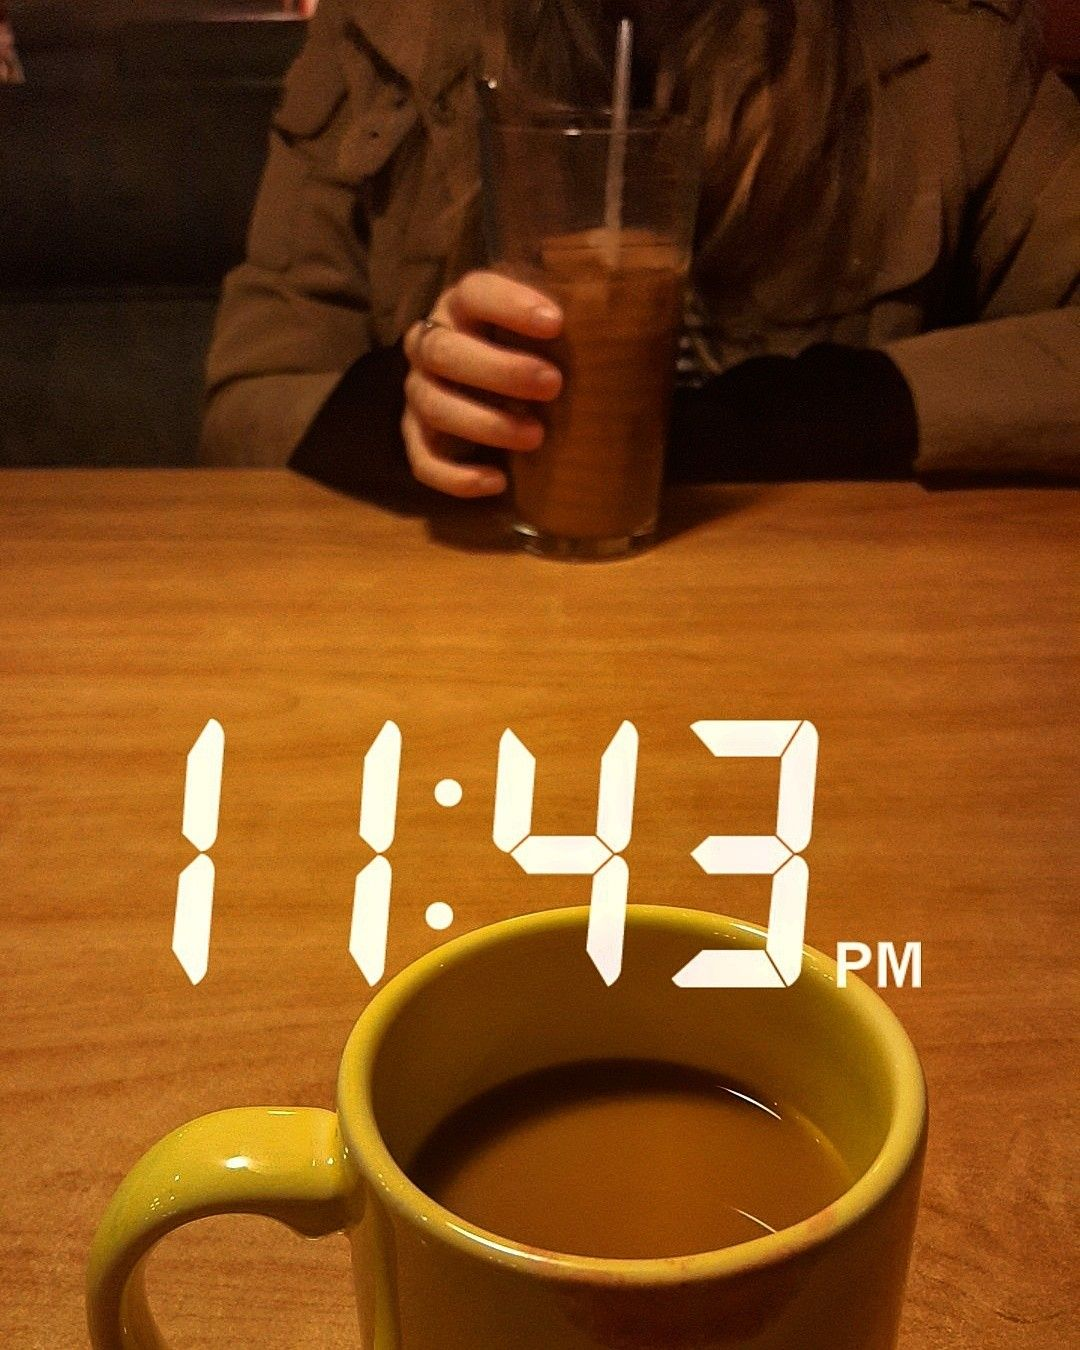 Late Night Coffee Runs After Scary Movies Before Walking Home Night Aesthetic Night Coffee Yellow Aesthetic